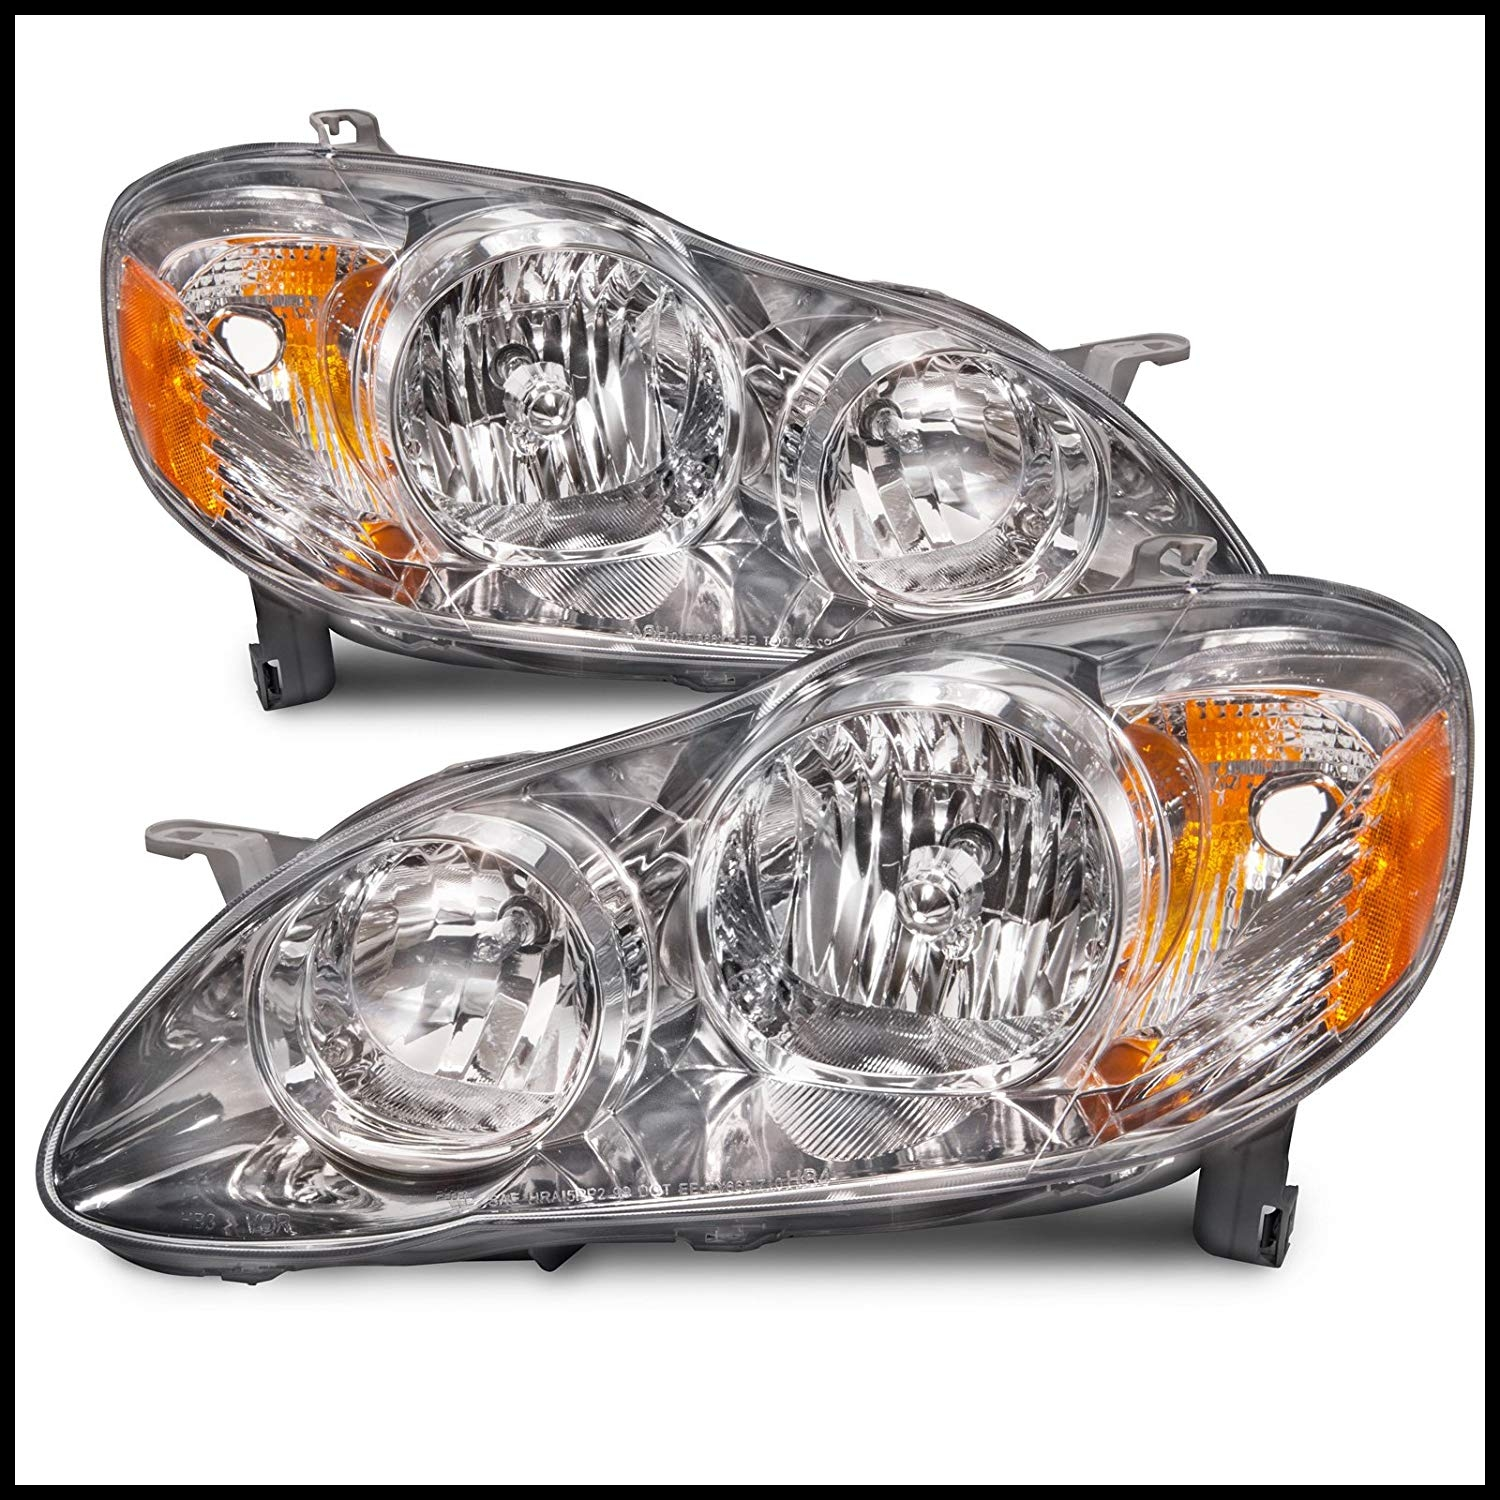 Amazon Headlights Depot Replacement for Toyota Corolla CE LE Model Headlights OE Style Replacement Headlamps Driver P Automotive